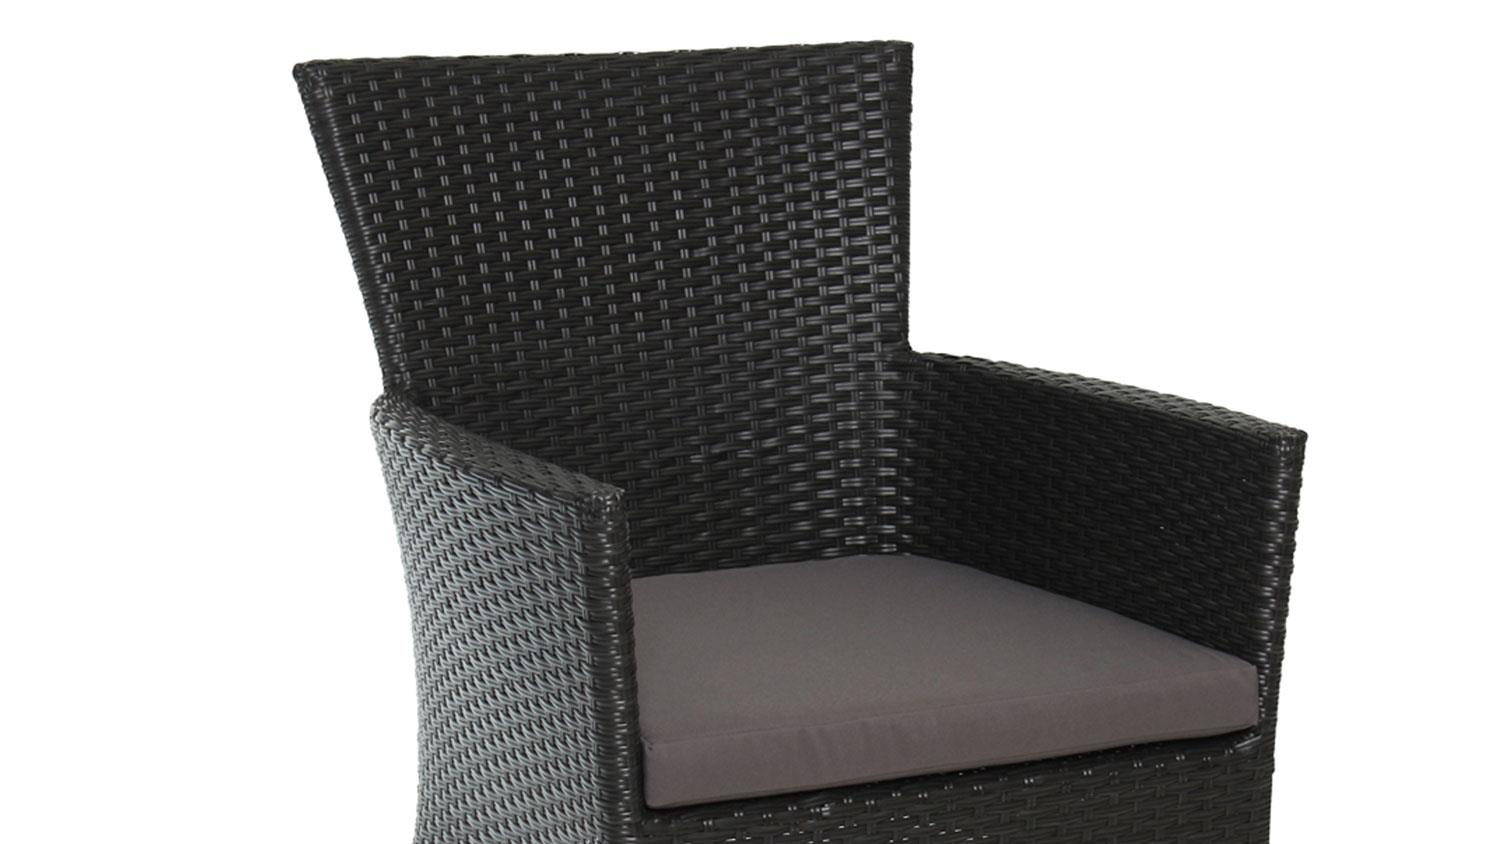 gartenstuhl 2er set polyrattan mit kissen in schwarz. Black Bedroom Furniture Sets. Home Design Ideas